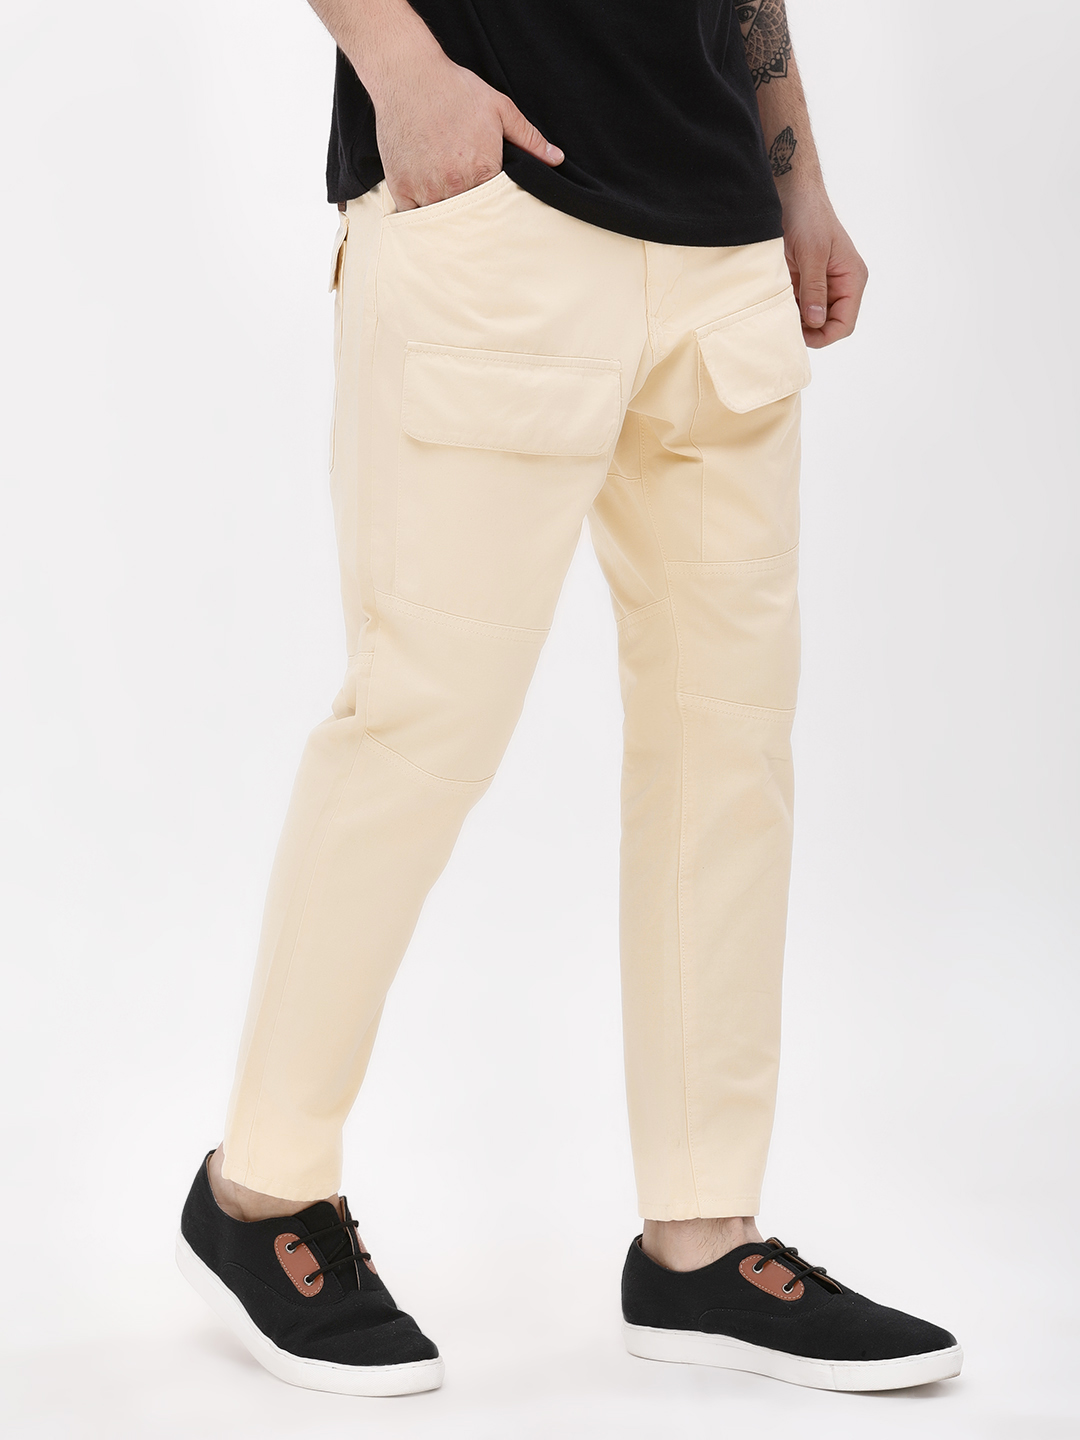 Blue Saint Off White Slim Cargo Trousers With Square Pocket 1